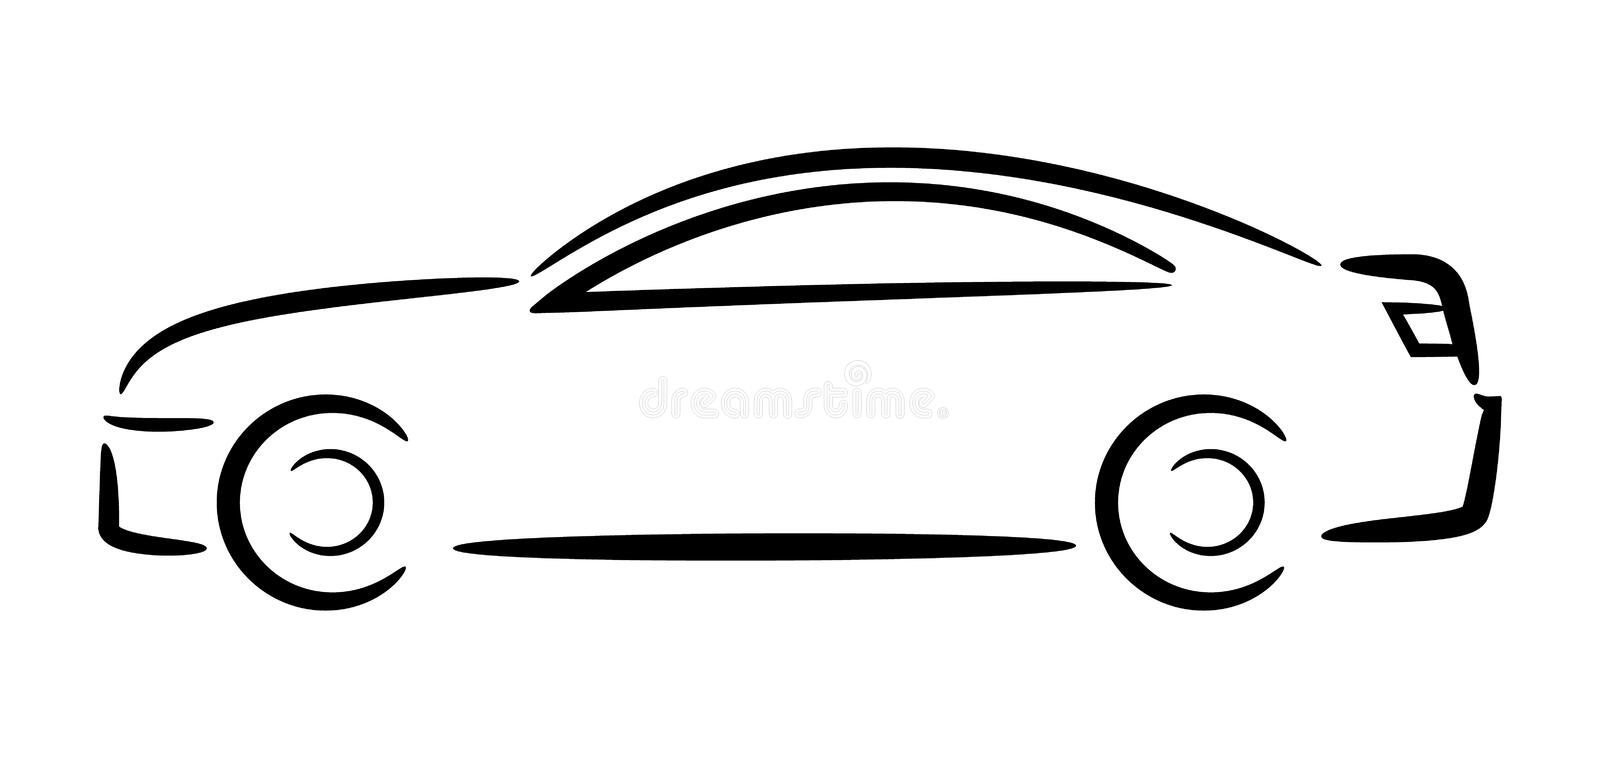 Car Outline. Vector Illustration. Stock Vector